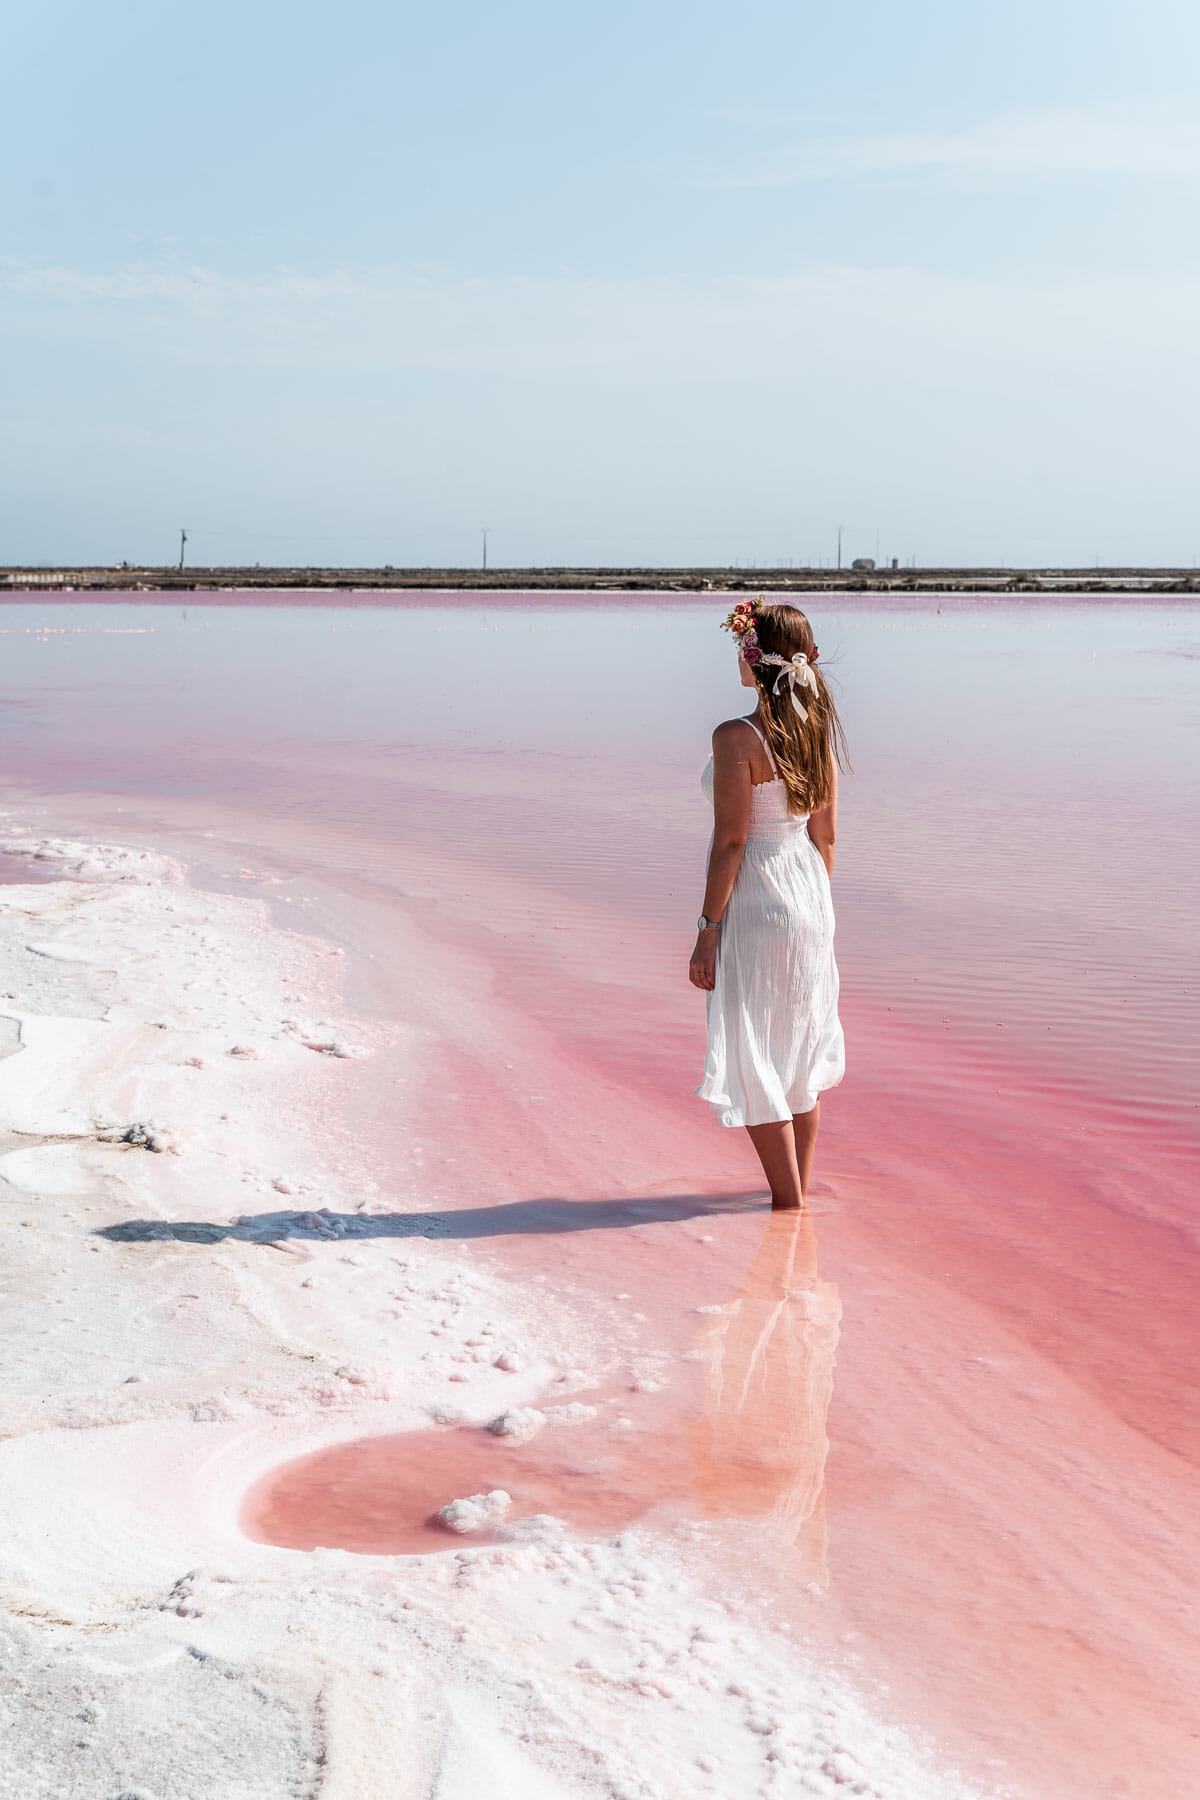 Girl in a white dress standing in a pink lake in France